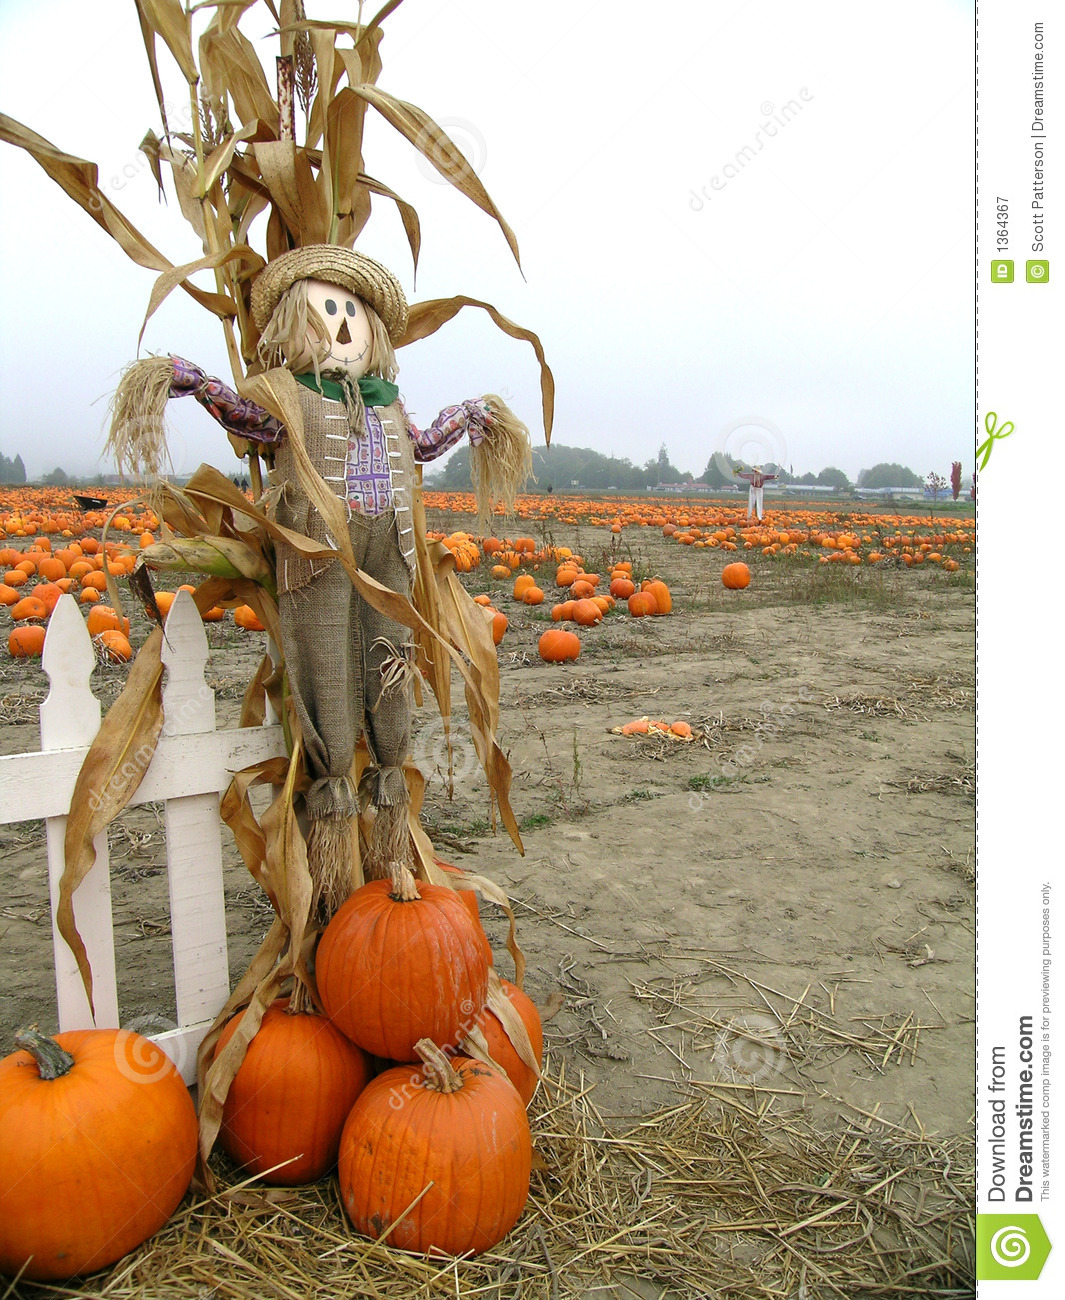 Fall Pumpkin Desktop Wallpaper Free Pumpkin Scarecrow Royalty Free Stock Photography Image